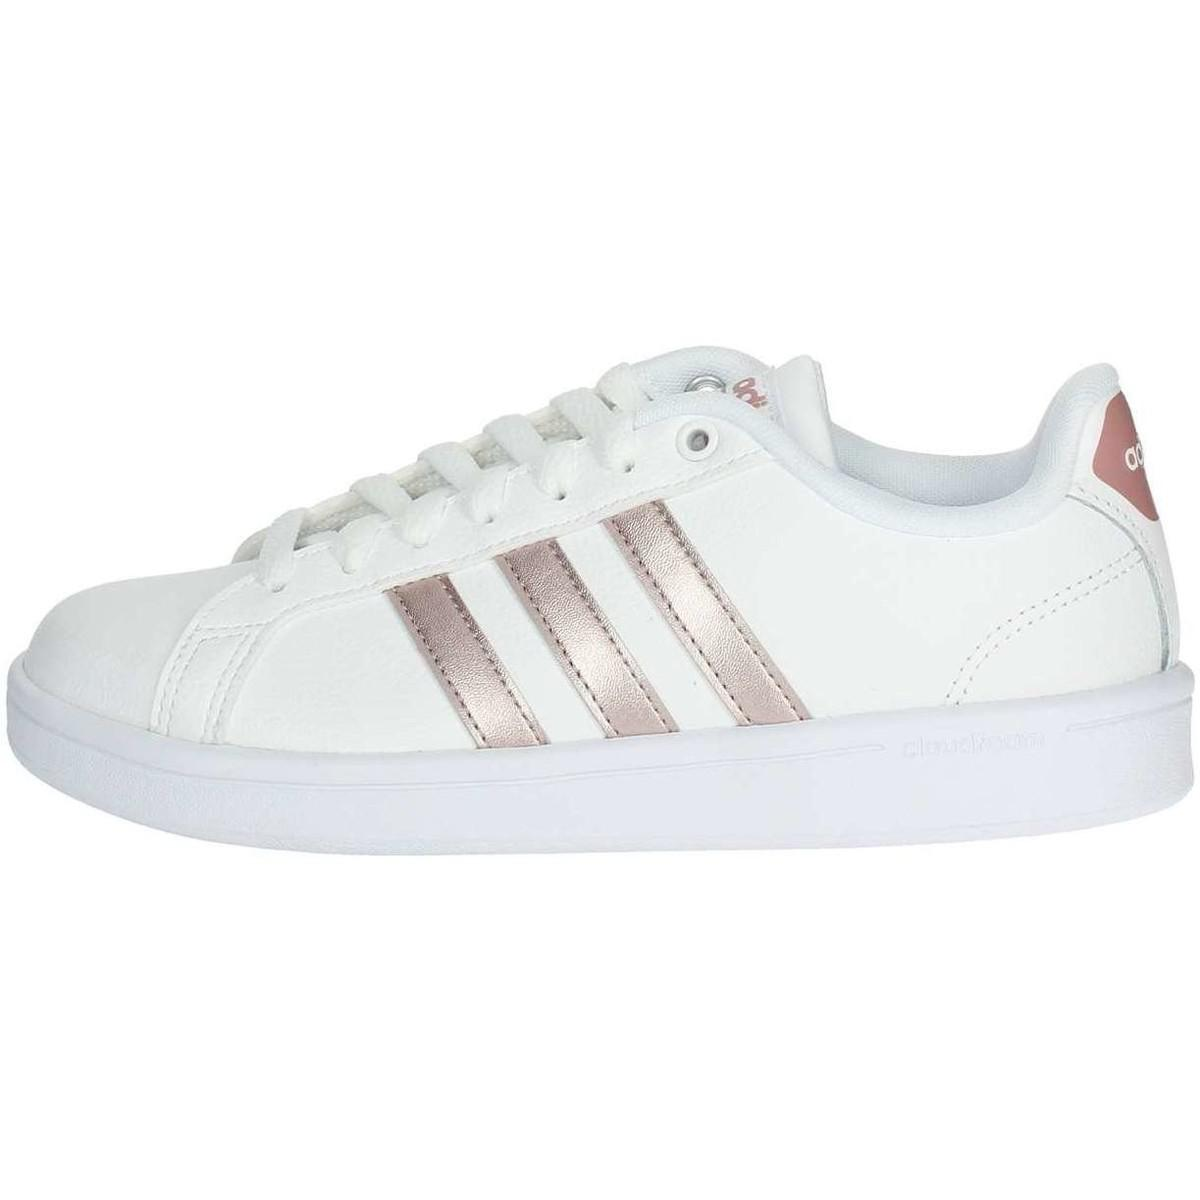 sports shoes c694f 855ed adidas Da9524 Women s Shoes (trainers) In White in White - Lyst